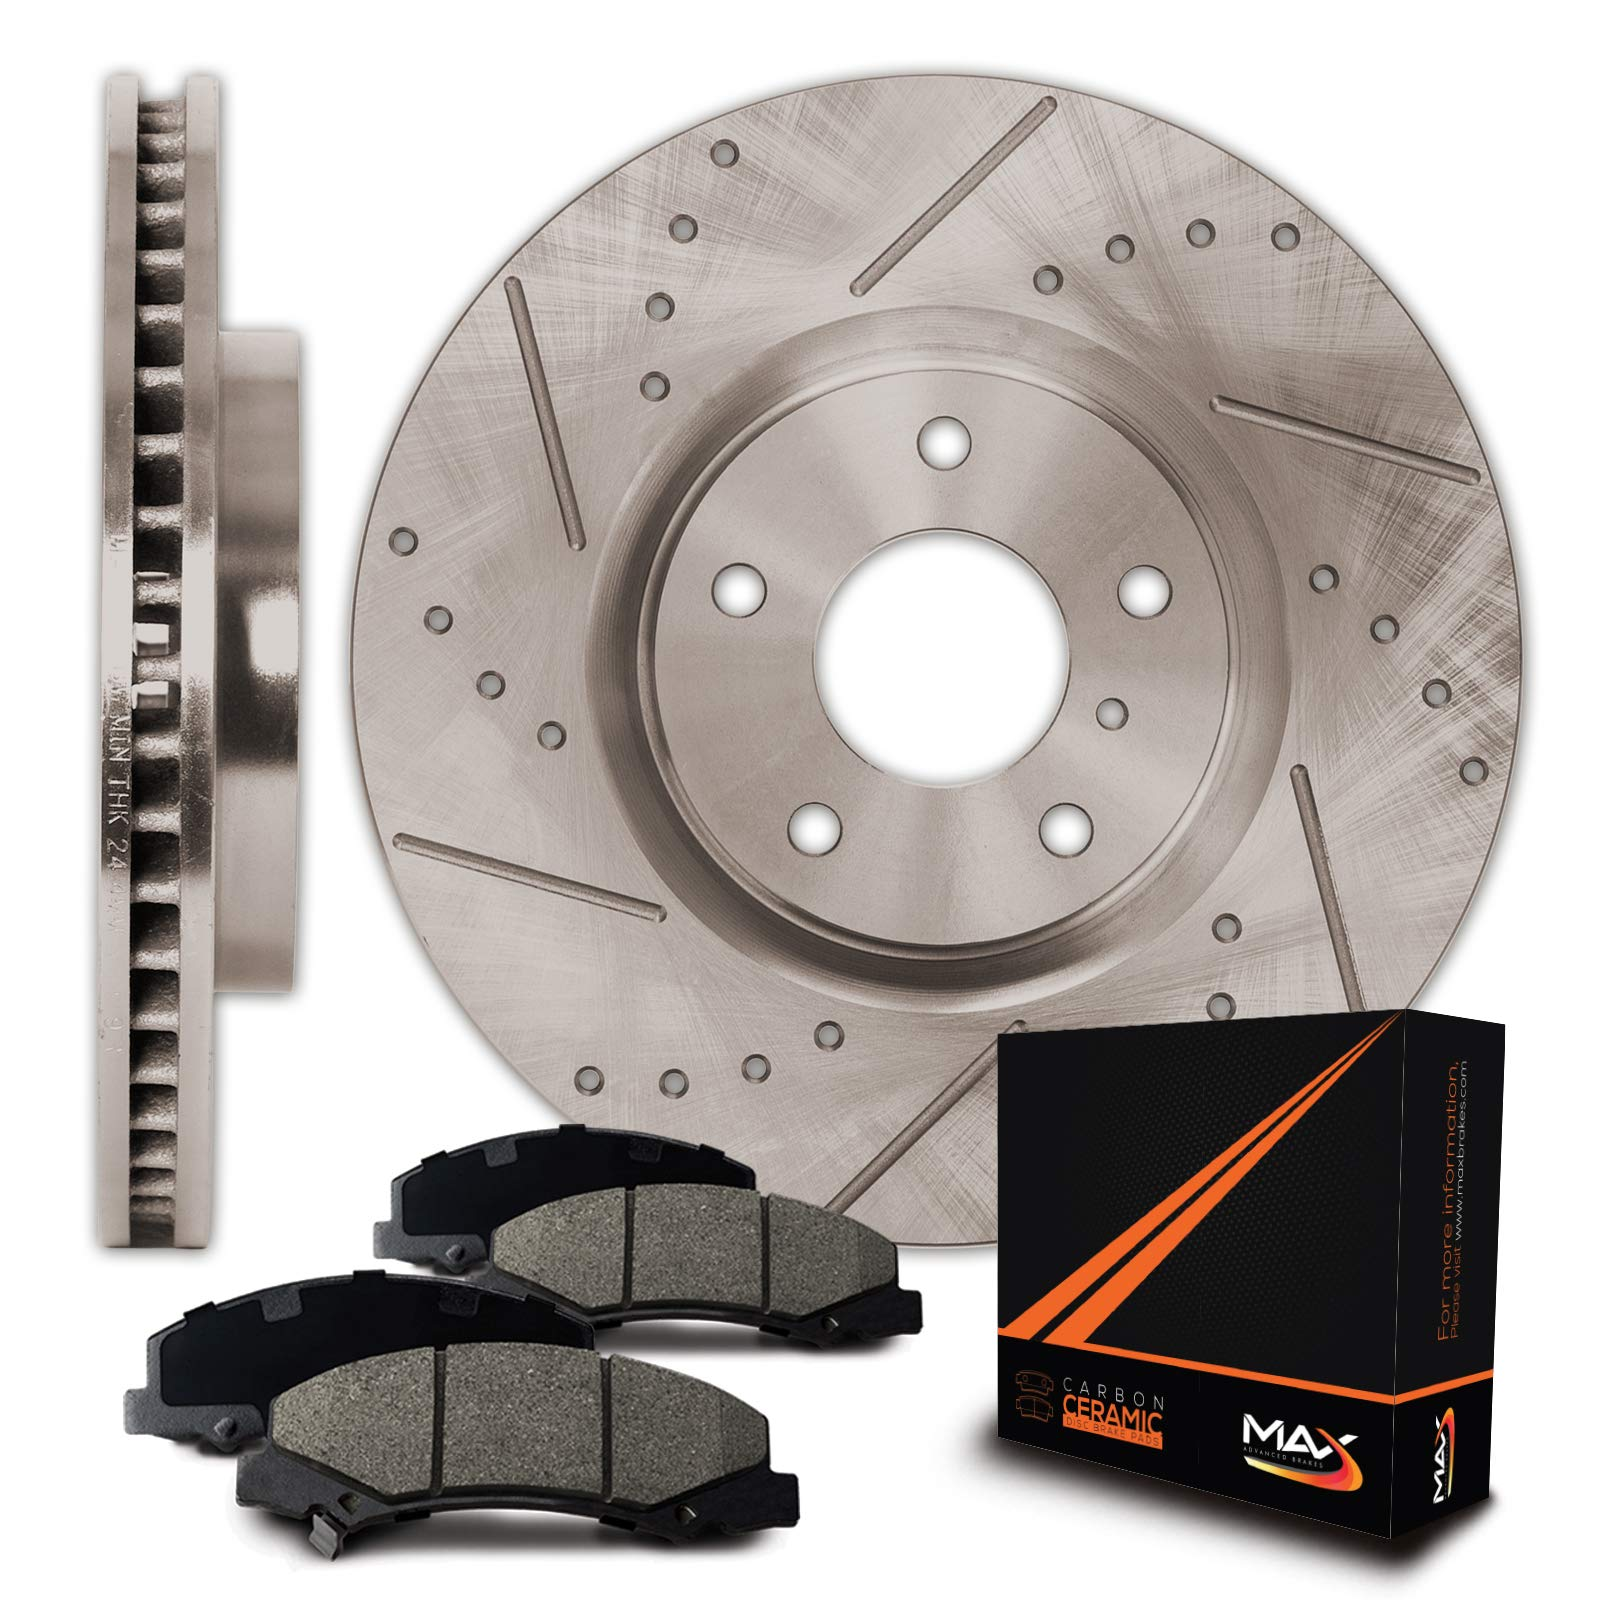 Max Brakes Premium Slotted+Drilled Rotors w/Ceramic Pads Front Performance Brake Kit KT005631 [Fits 1999-2008 Acura TL | 2003-2010 TSX]